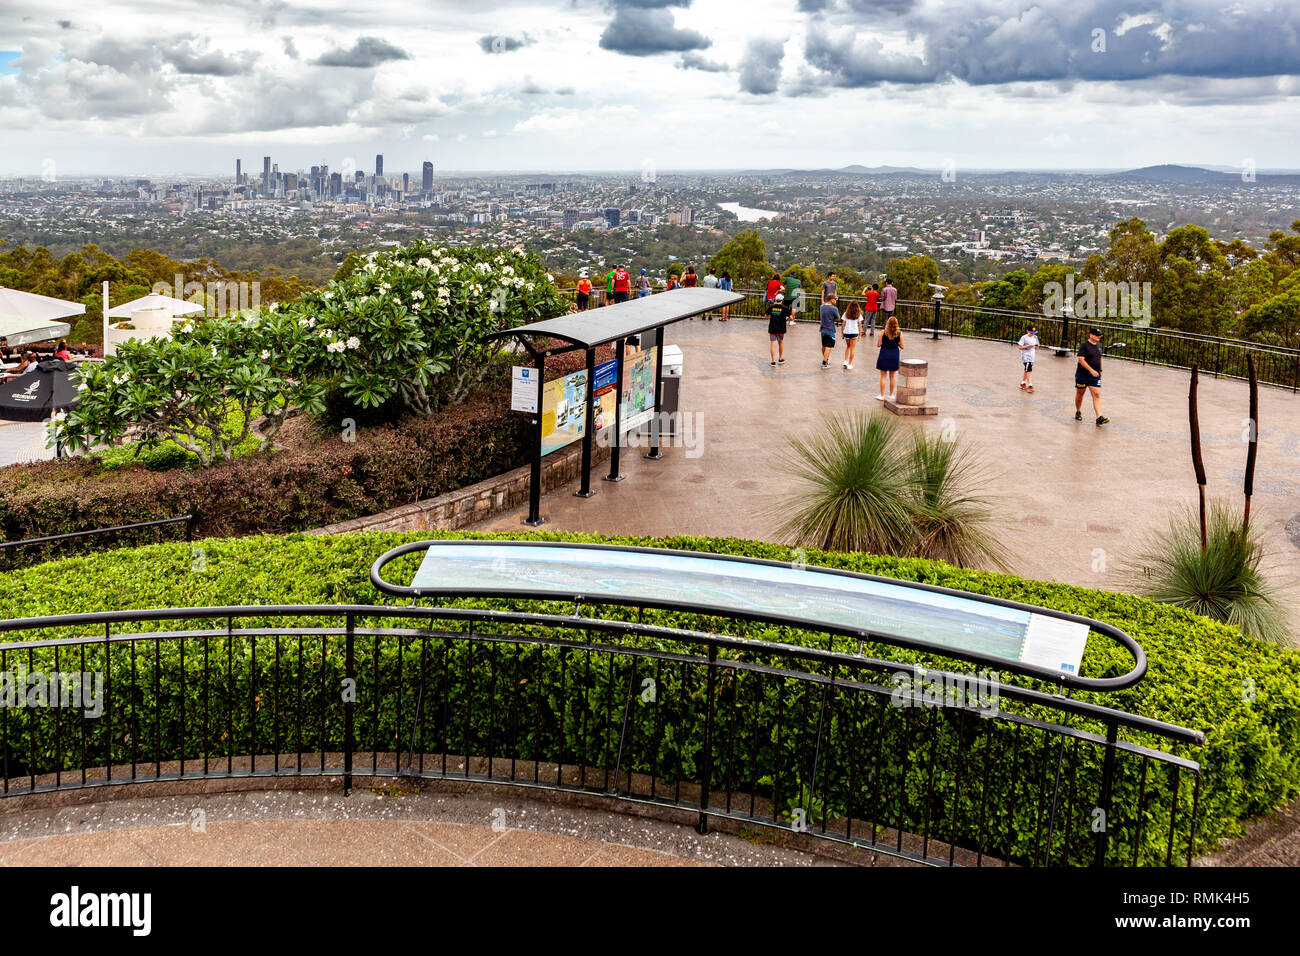 BRISBANE, Australia - January 9 2019: People viewing Brisbane CBD skyscrapers from Mount Coot-tha lookout - Stock Image